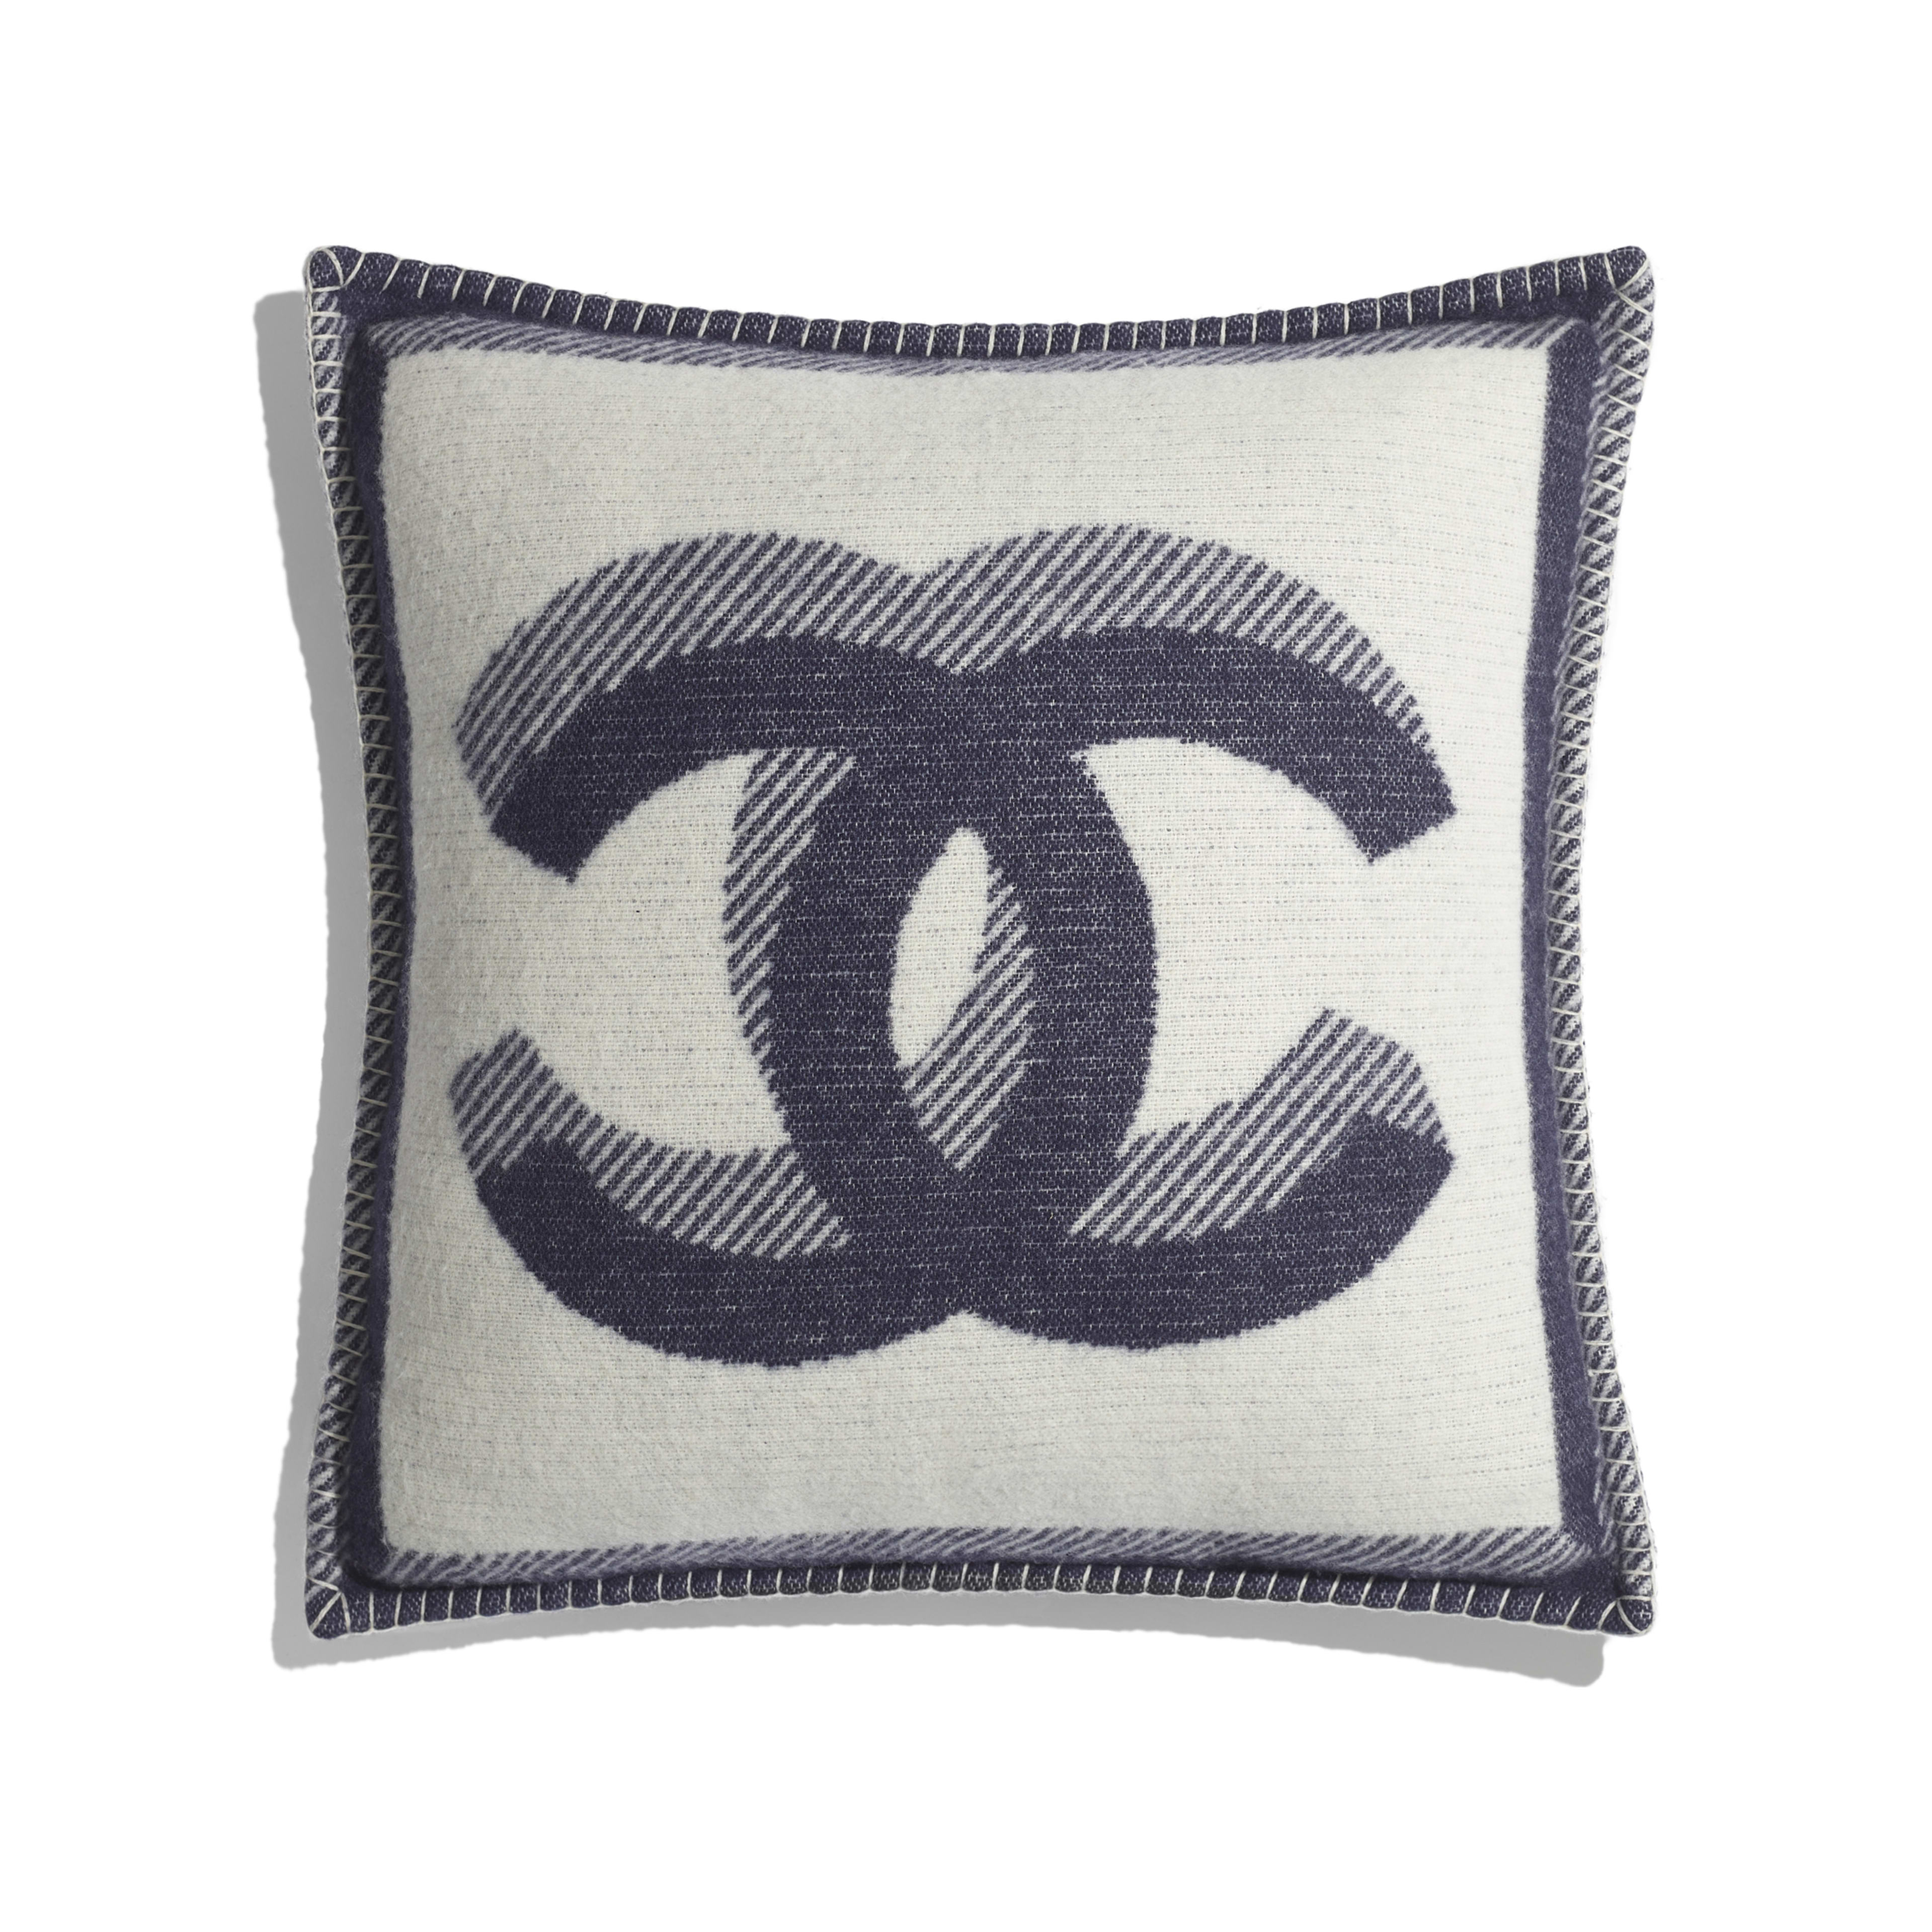 Pillow - Ivory & Navy Blue - Wool & Cashmere - Default view - see full sized version